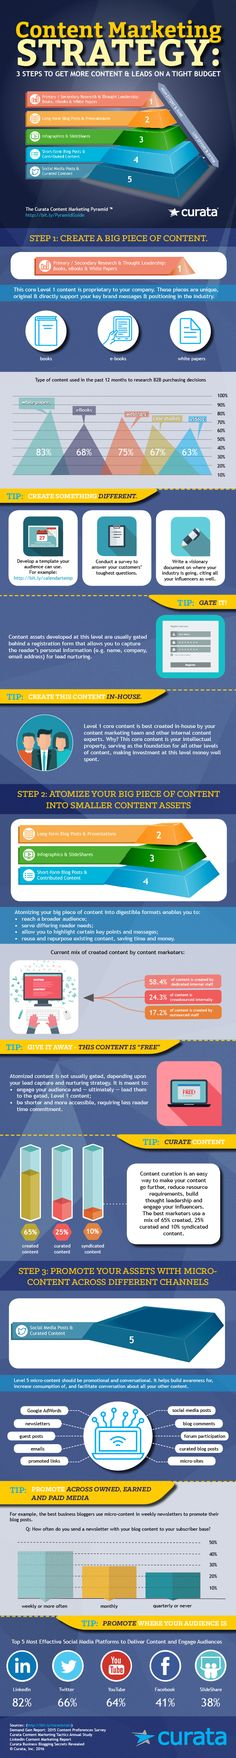 The Ultimate Content Marketing Strategy [Infographic] | Content Marketing Forum